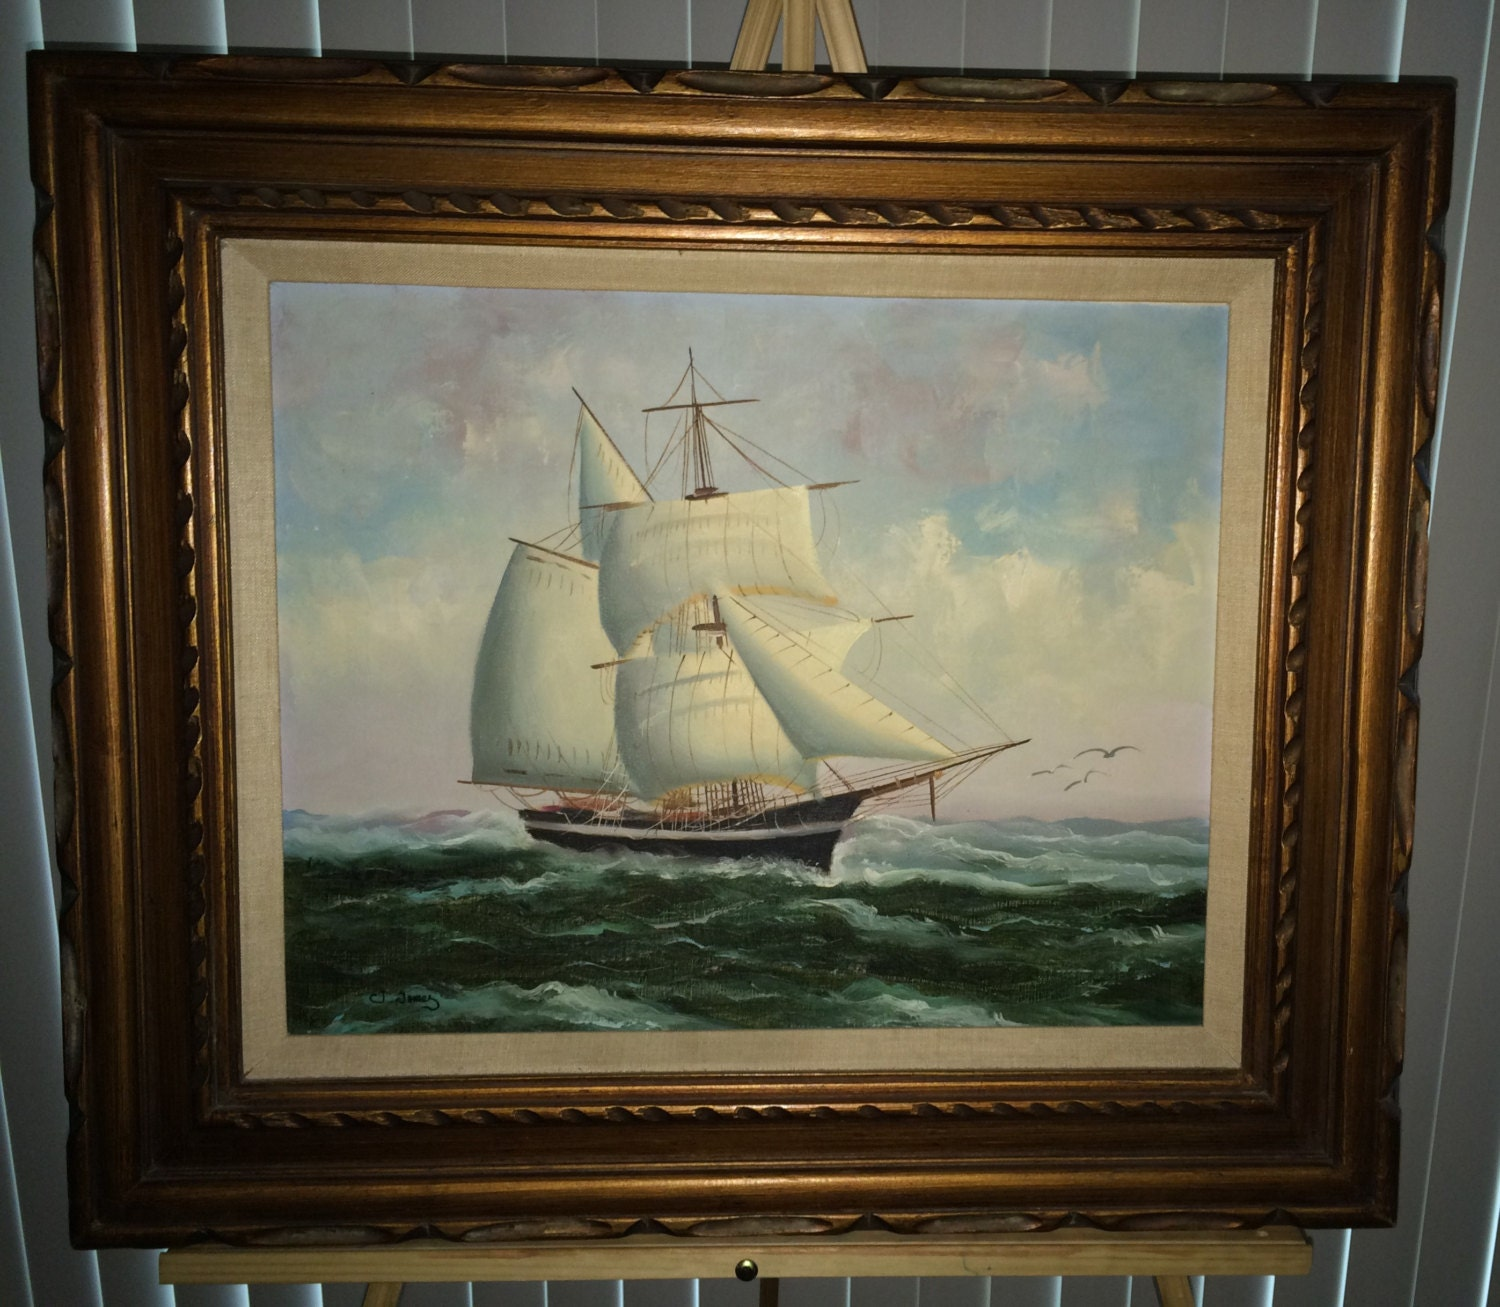 New Jersey Home Painting From J S Painting: Clipper Ship Oil On Canvas Original Painting Signed By J